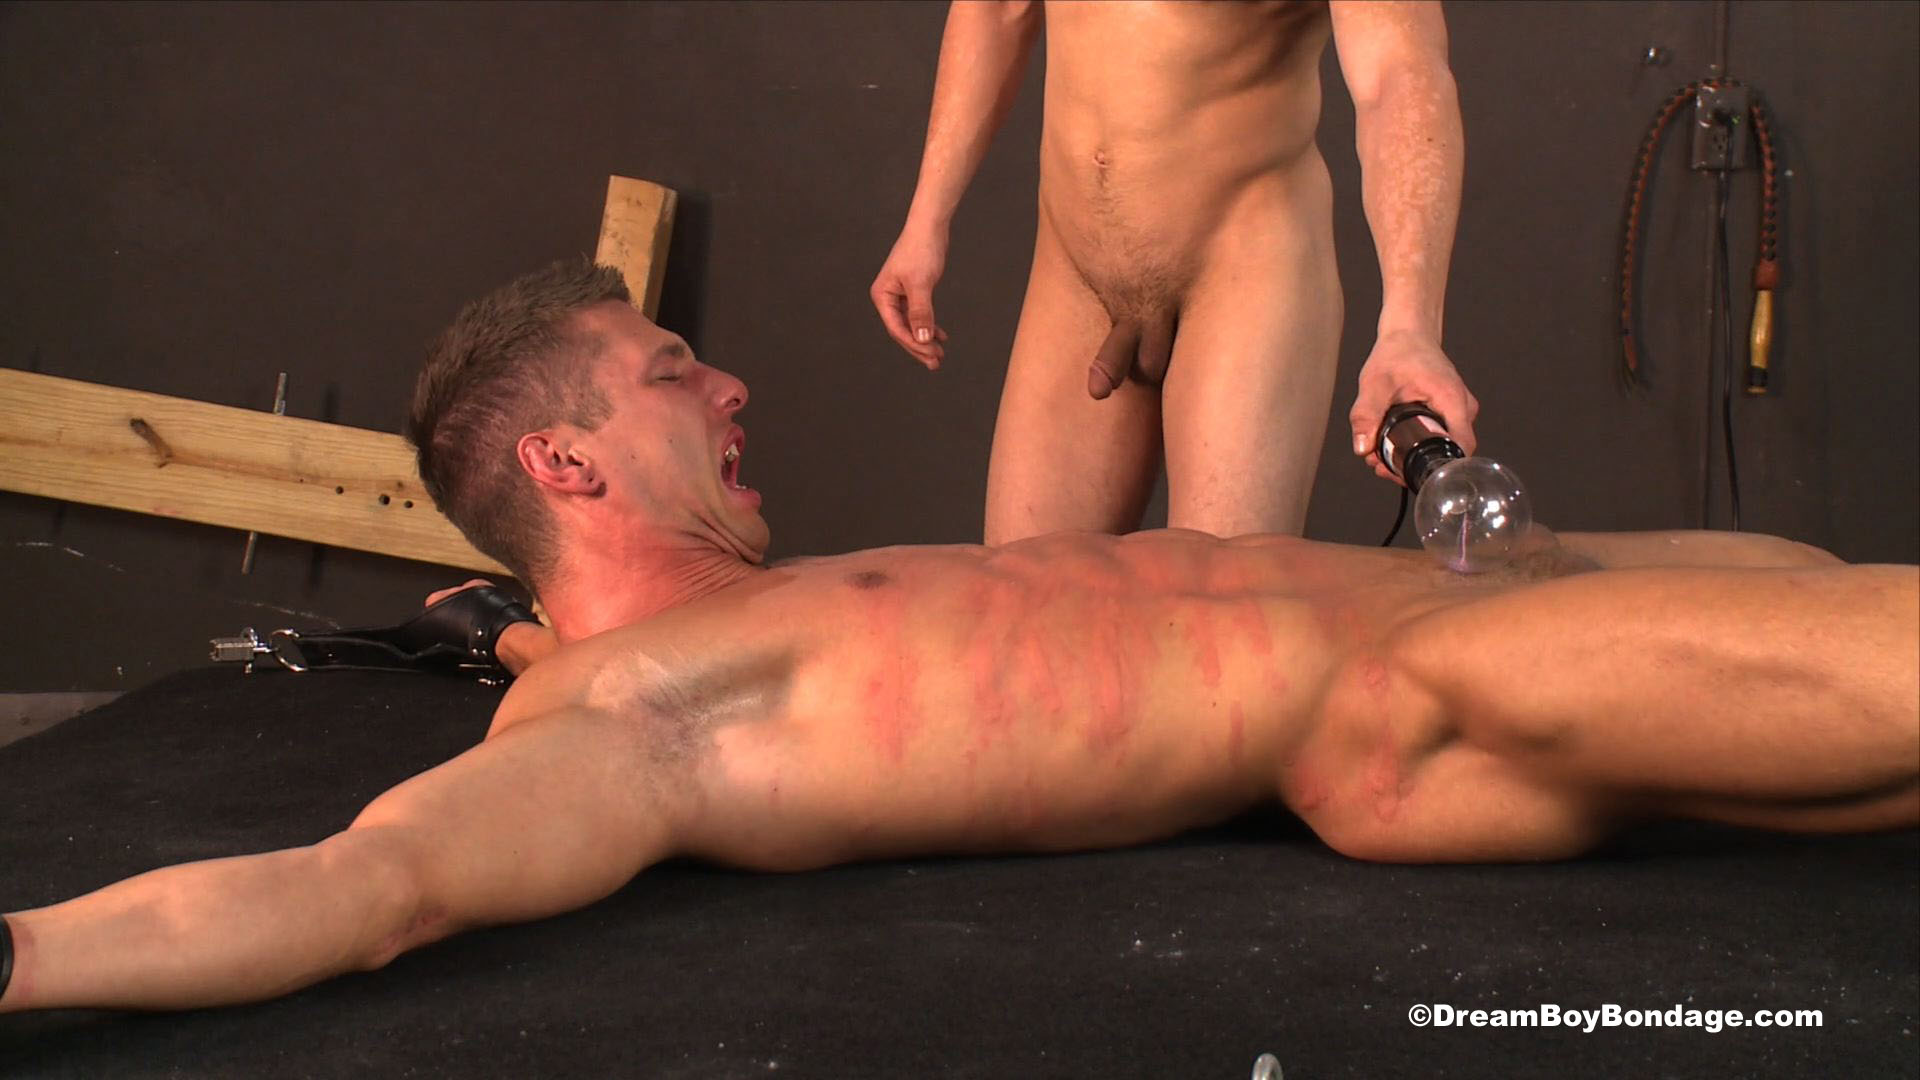 Free gay male bondage videos